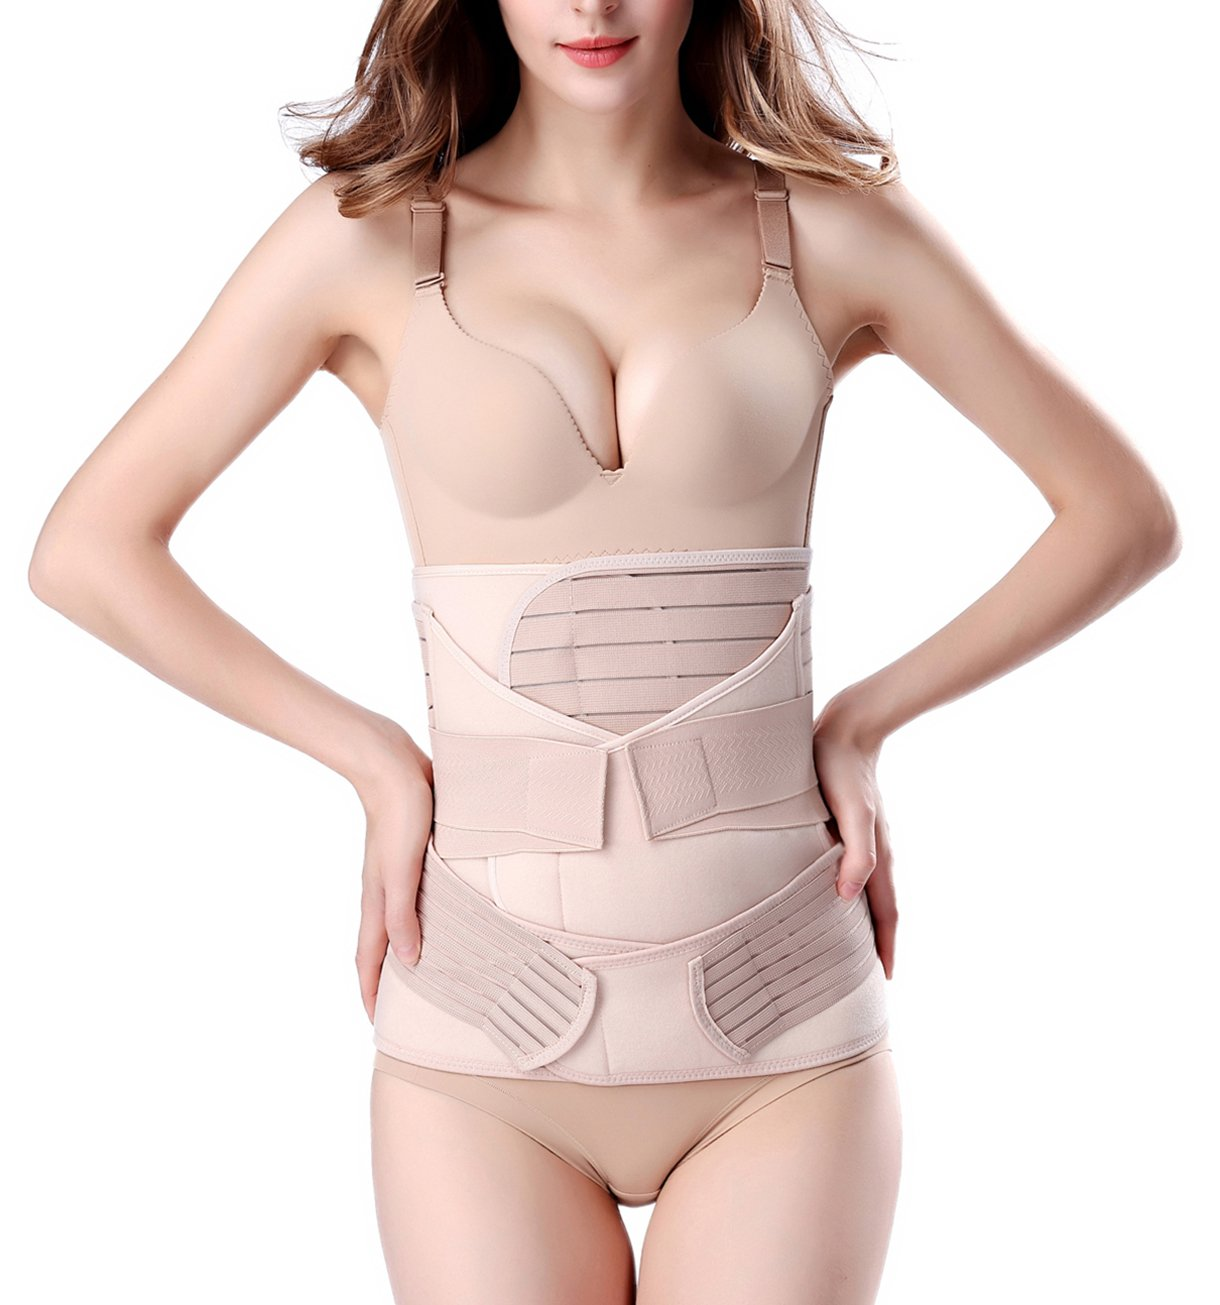 3 in 1 Postpartum Support - Recovery Belly/waist/pelvis Belt Shapewear Slimming Girdle, Beige, One Size by Chongerfei (Image #1)